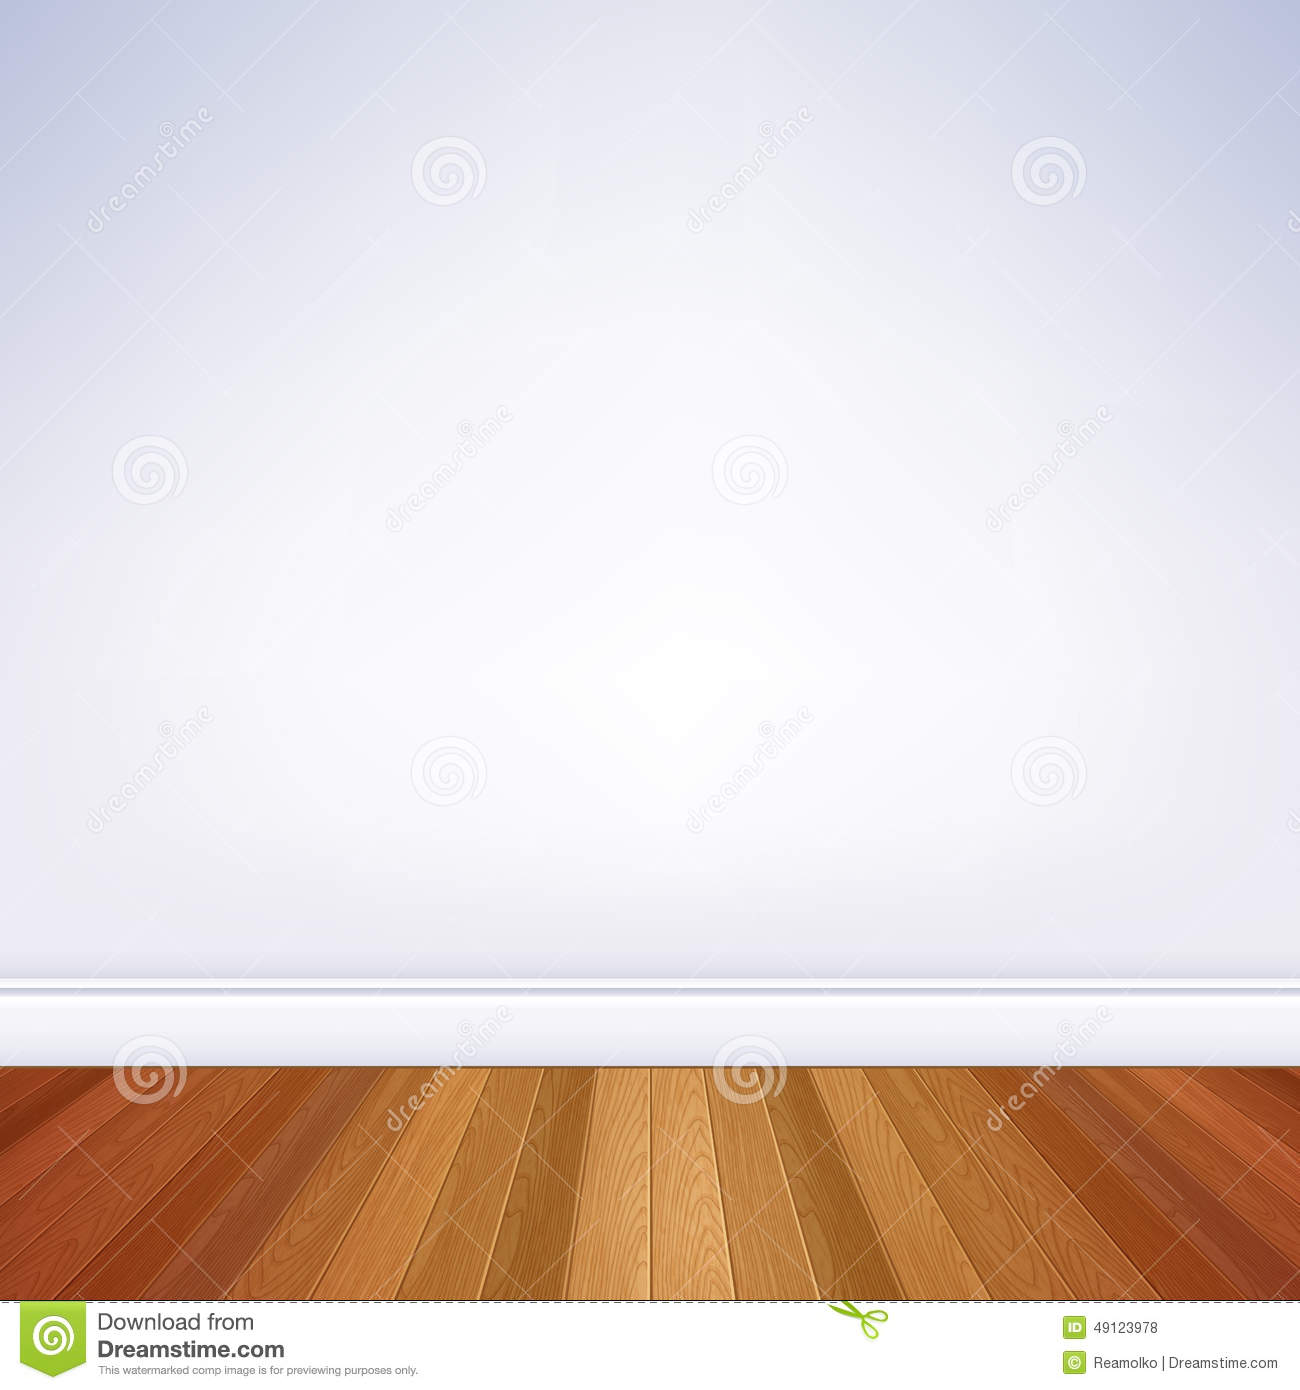 empty room wall and floor template stock vector illustration of